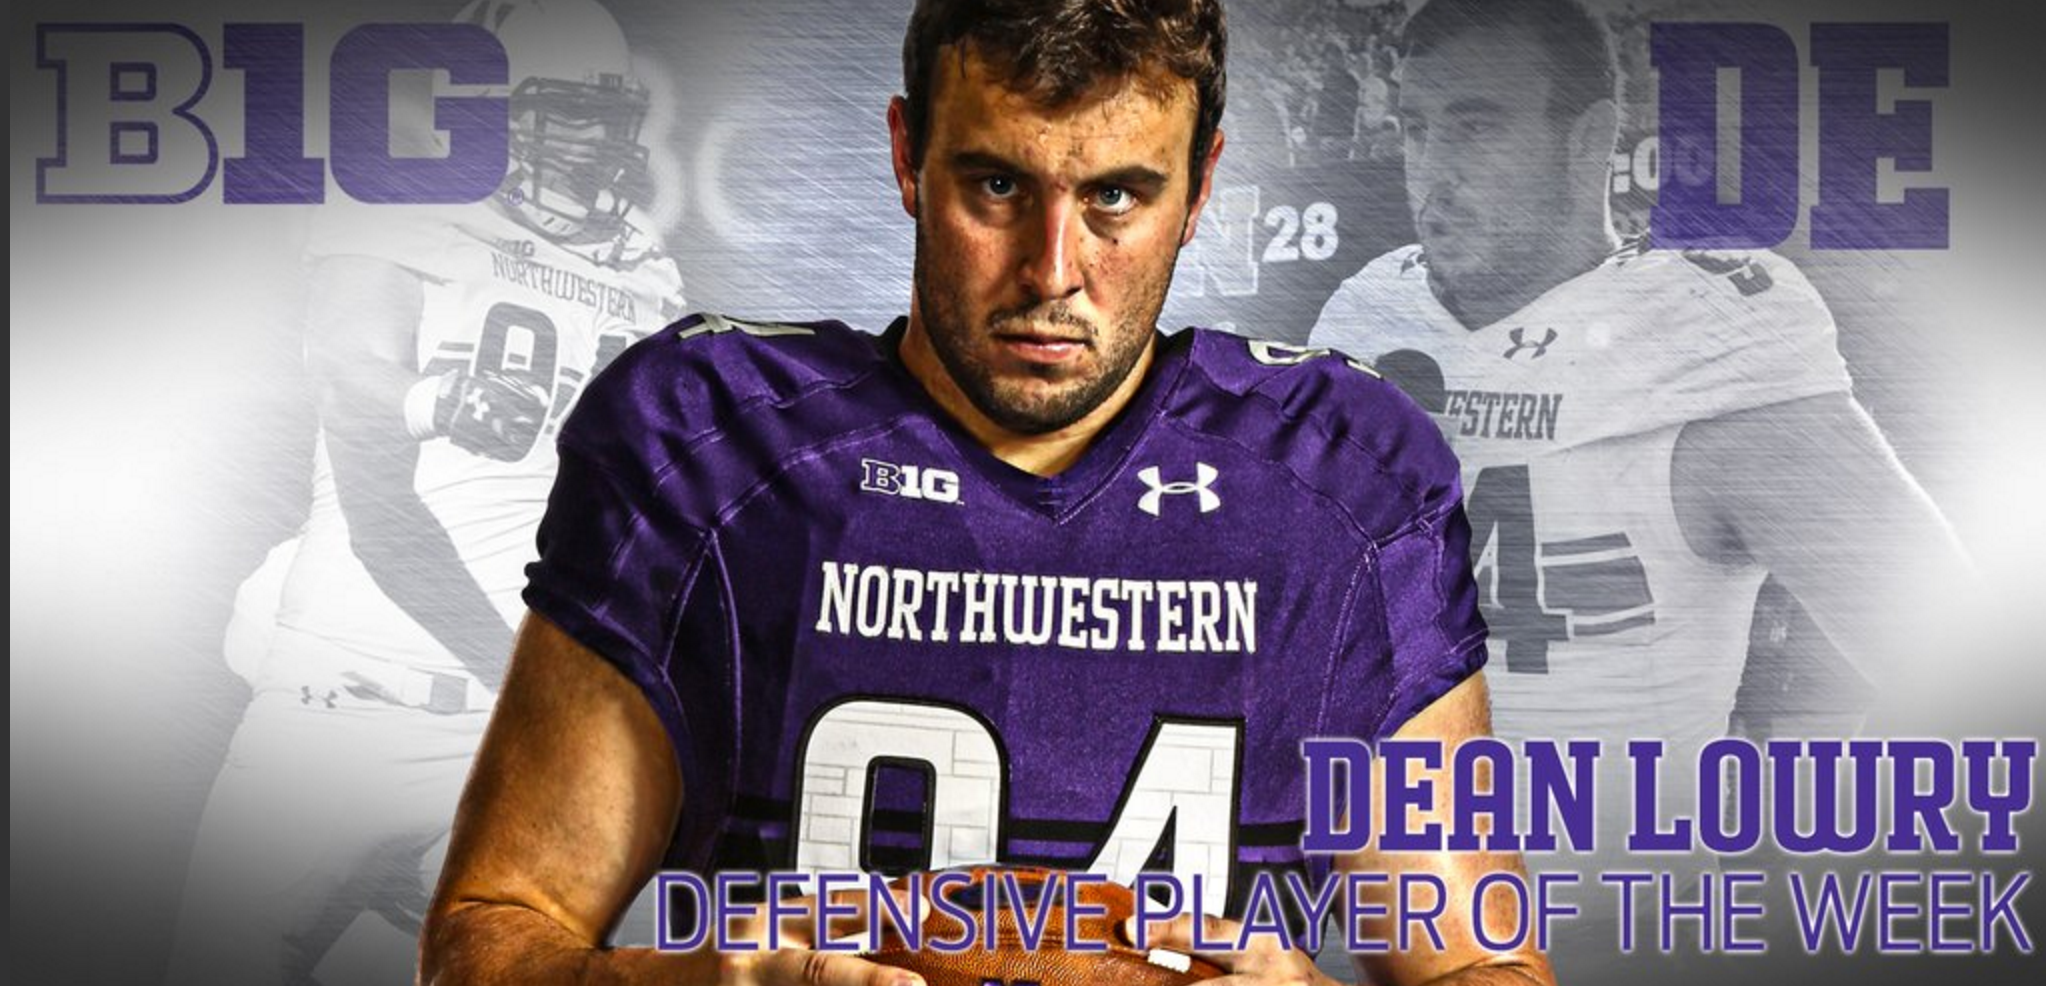 It's been quite a week for Dean Lowry: first Big Ten Defensive Player of the Week, and now WNUR Defensive Player of the Half-Season.